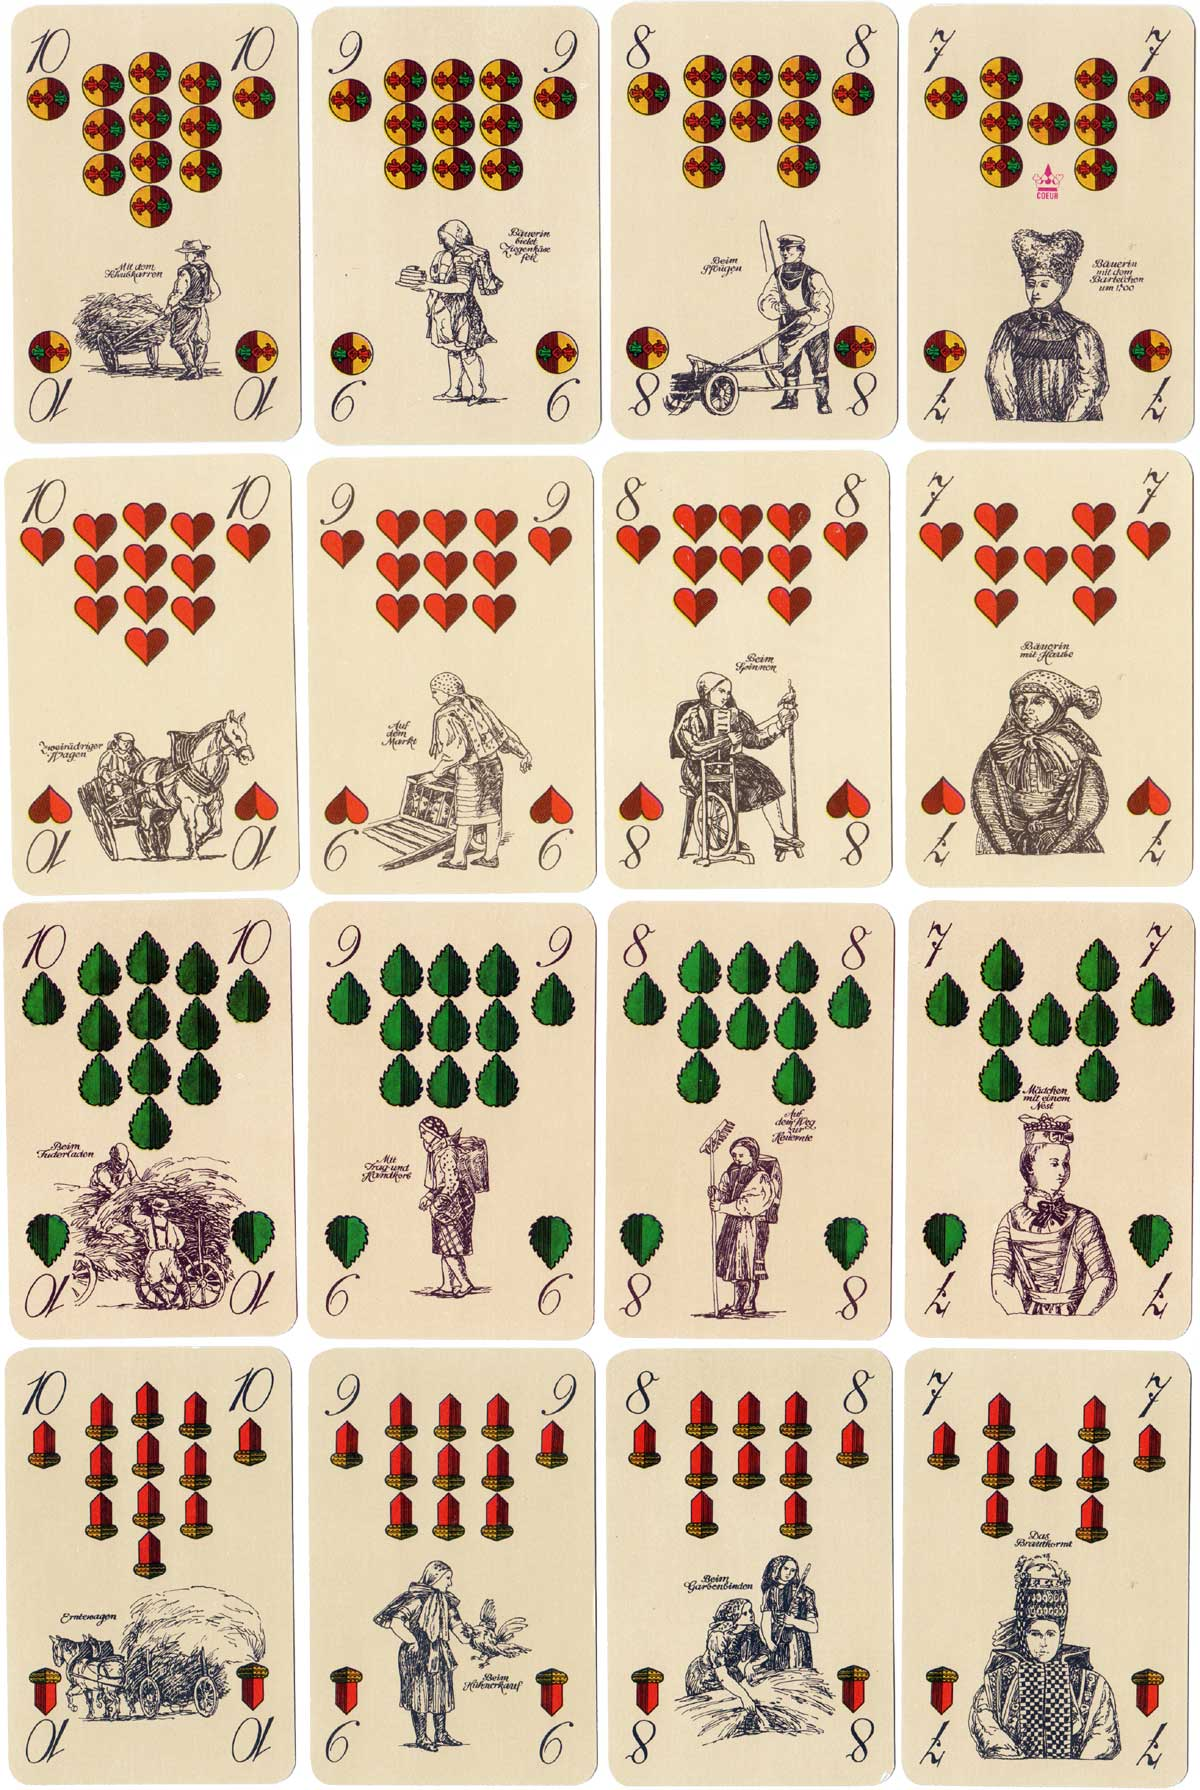 """Altenburger Bauerntrachten"" commemorating 150 years of playing cards from Altenburg, designed by Andreas Wachter, 1982"